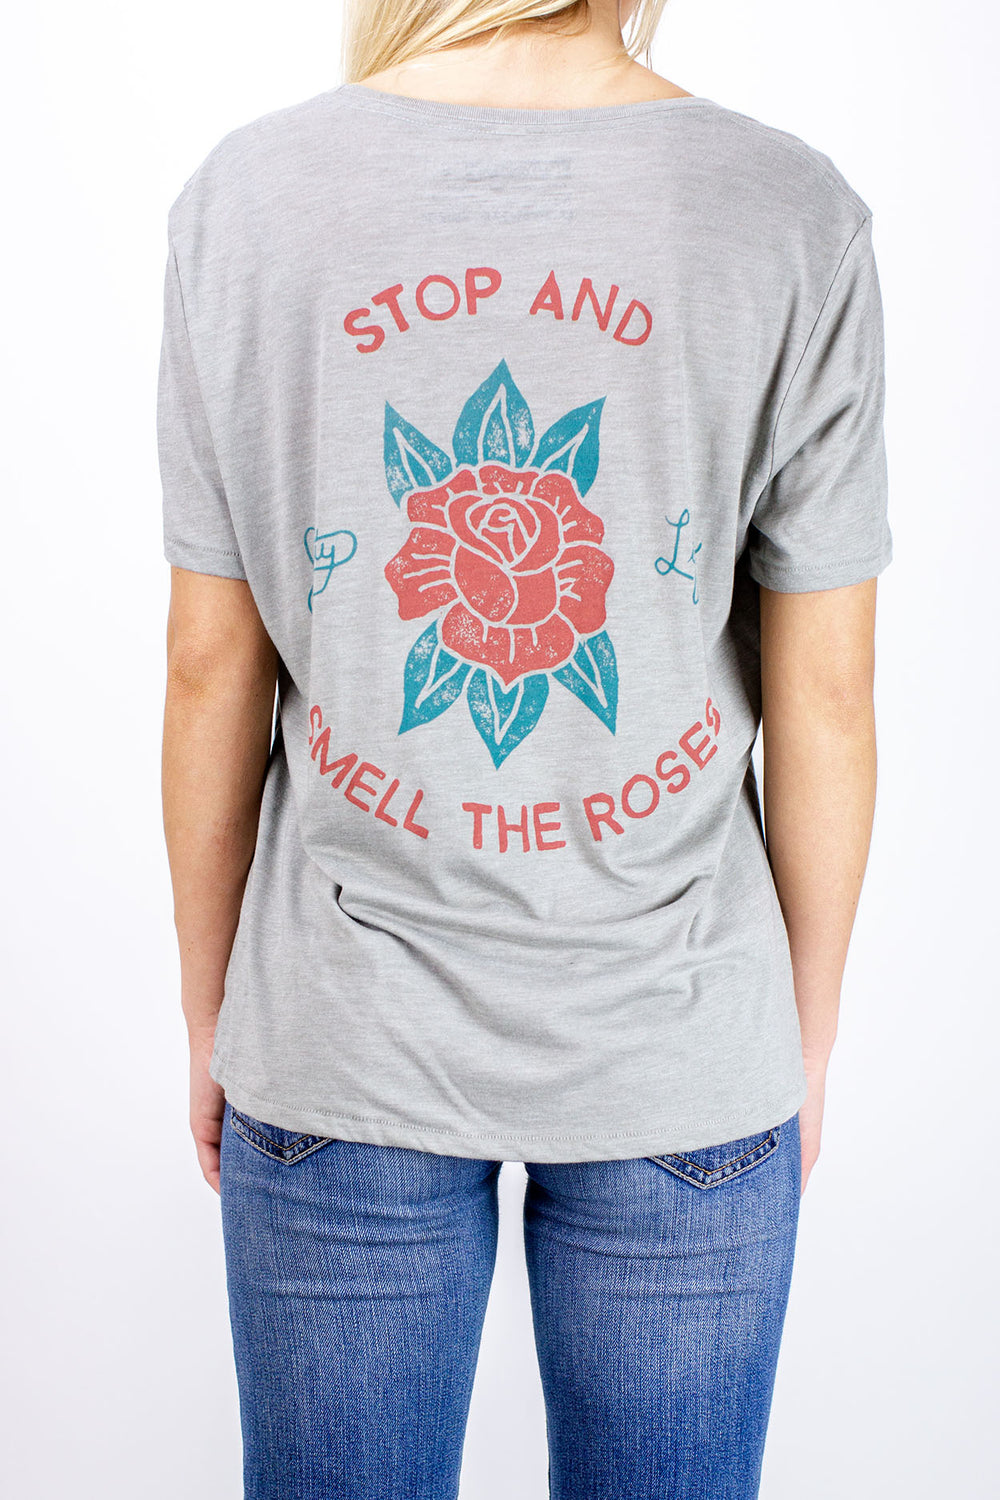 Jetty - The Roses Pocket Tee - Heather Grey